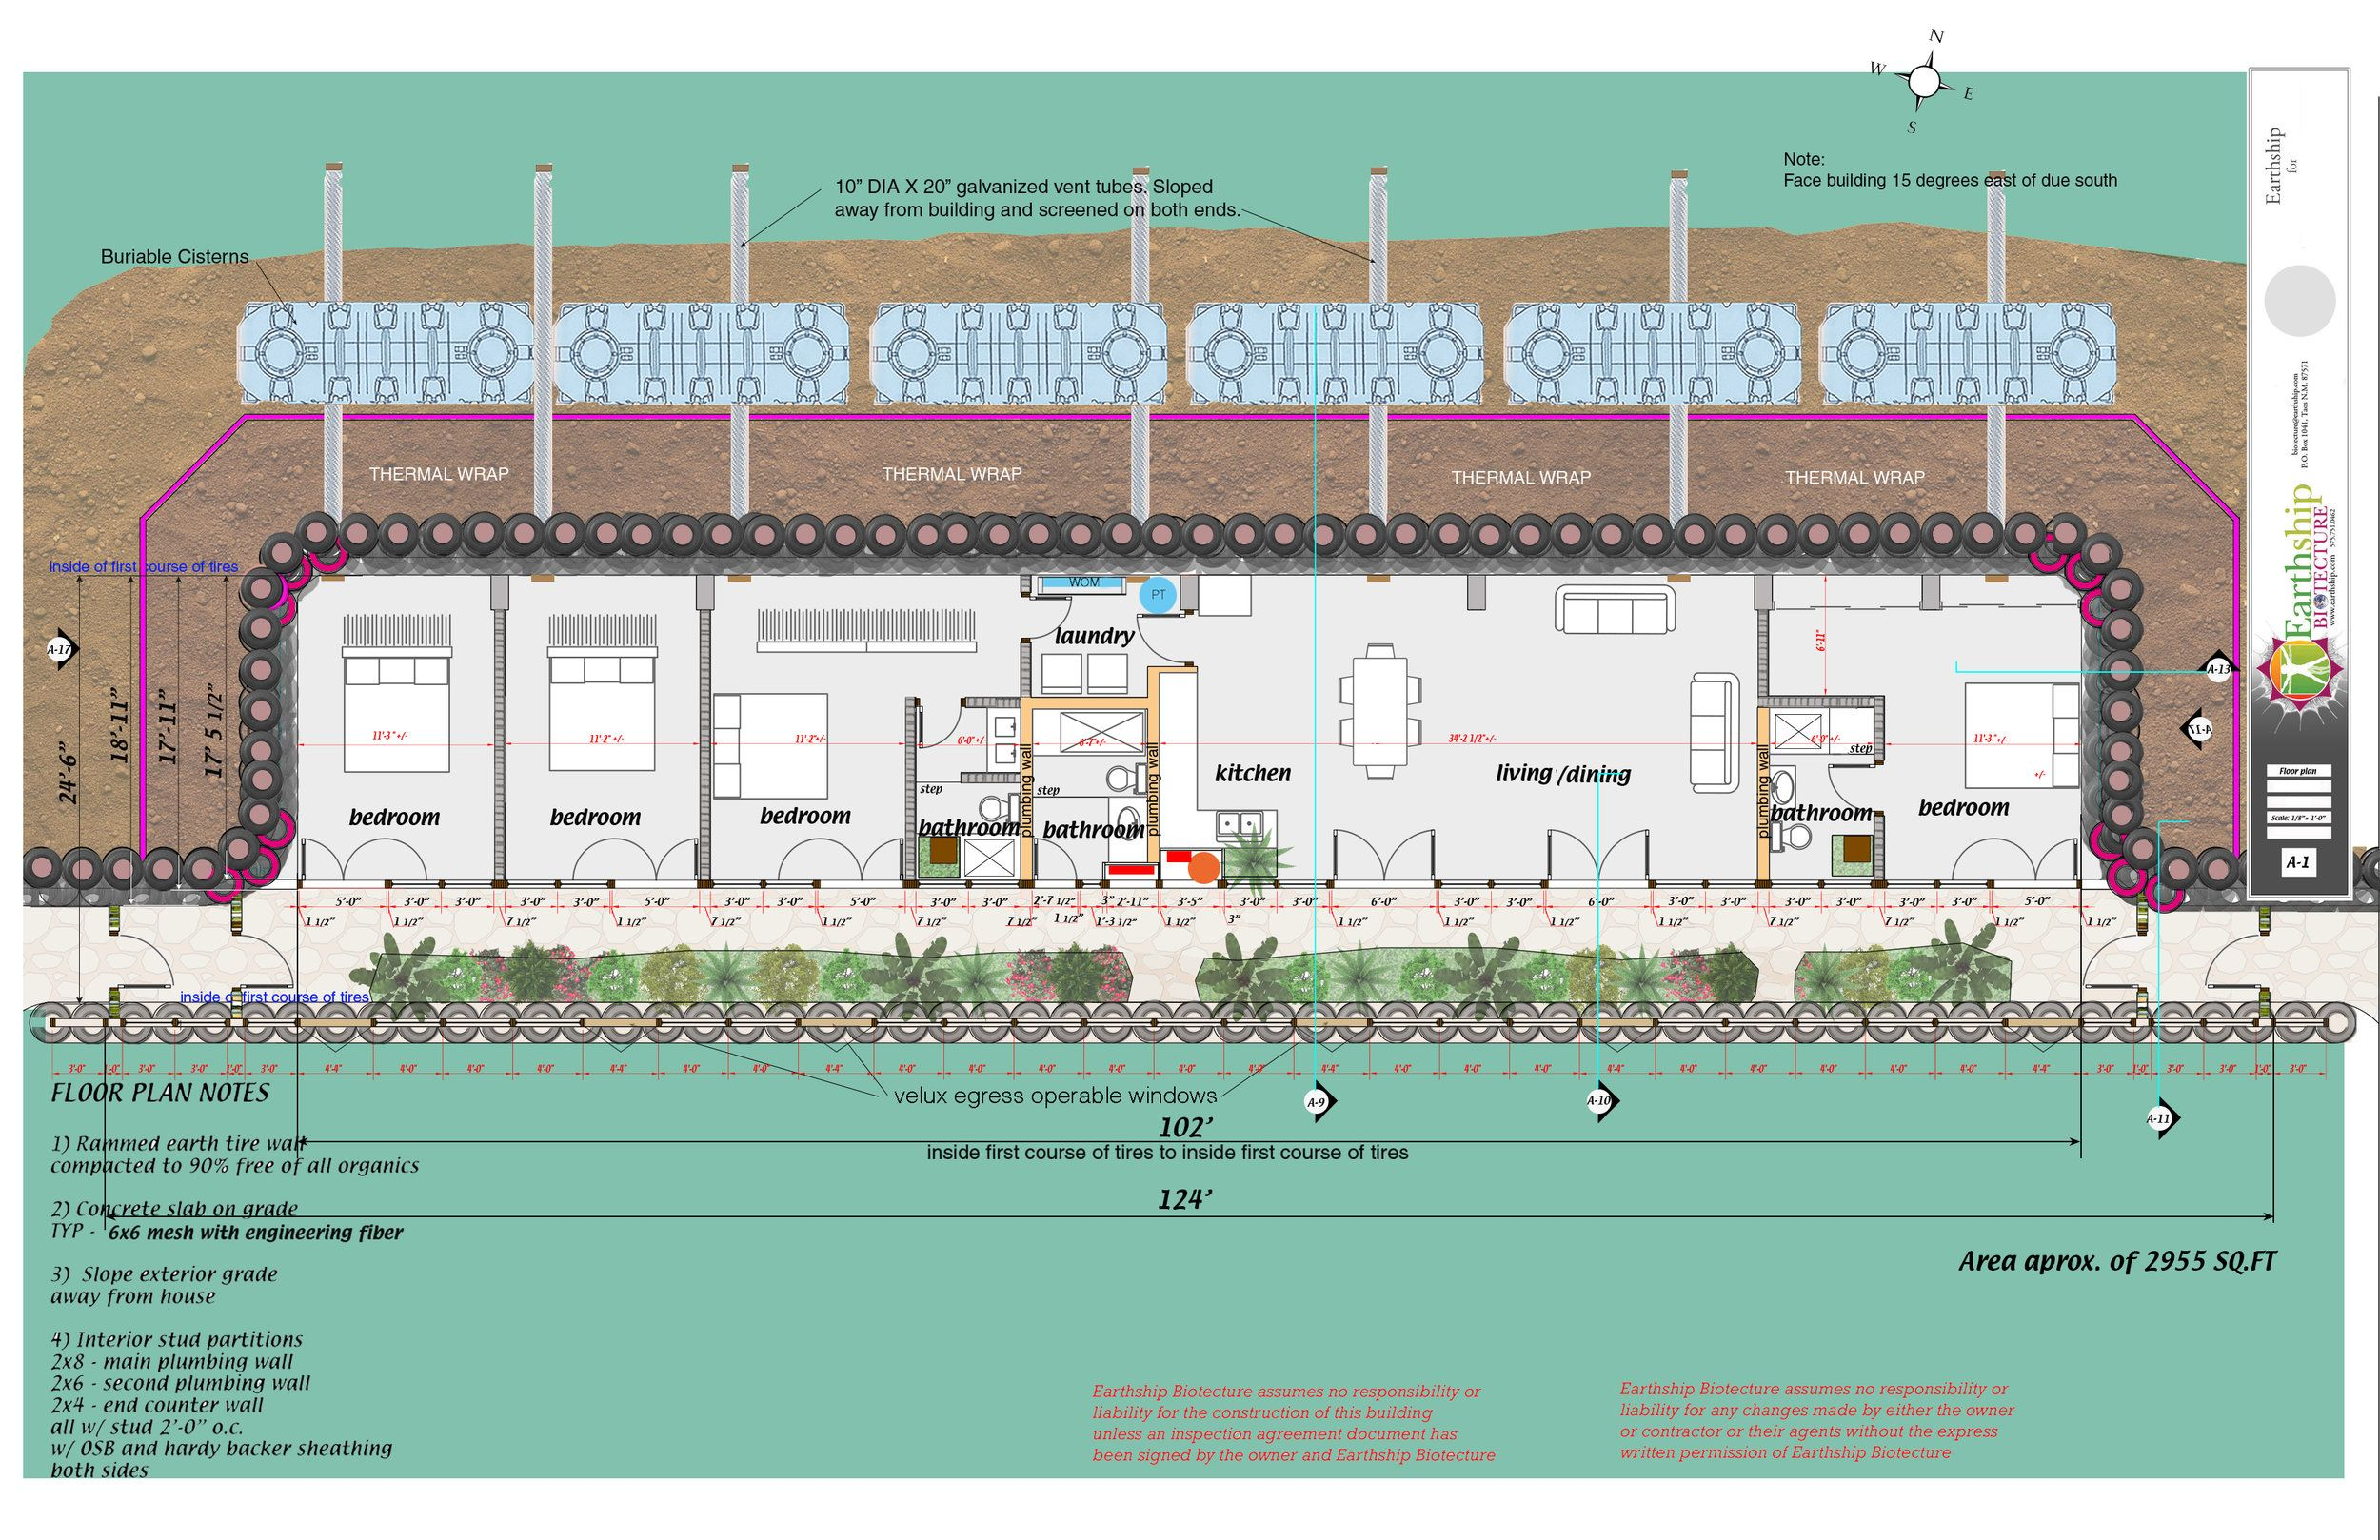 4 BEDROOMS/ 3 BATHROOMS GLOBAL | Earthship plans, Earthship ... on zero energy home plans, organic home plans, earthship construction plans, classic home plans, castle earthship plans, off the grid home plans, self-sufficient home plans, new country home plans, earth home plans, survival home plans, earthship 3-bedroom plans, floor plans, permaculture home plans, green home plans, three story home plans, one-bedroom cottage home plans, straw homes or cottage plans, earthship building plans, luxury earthship plans,